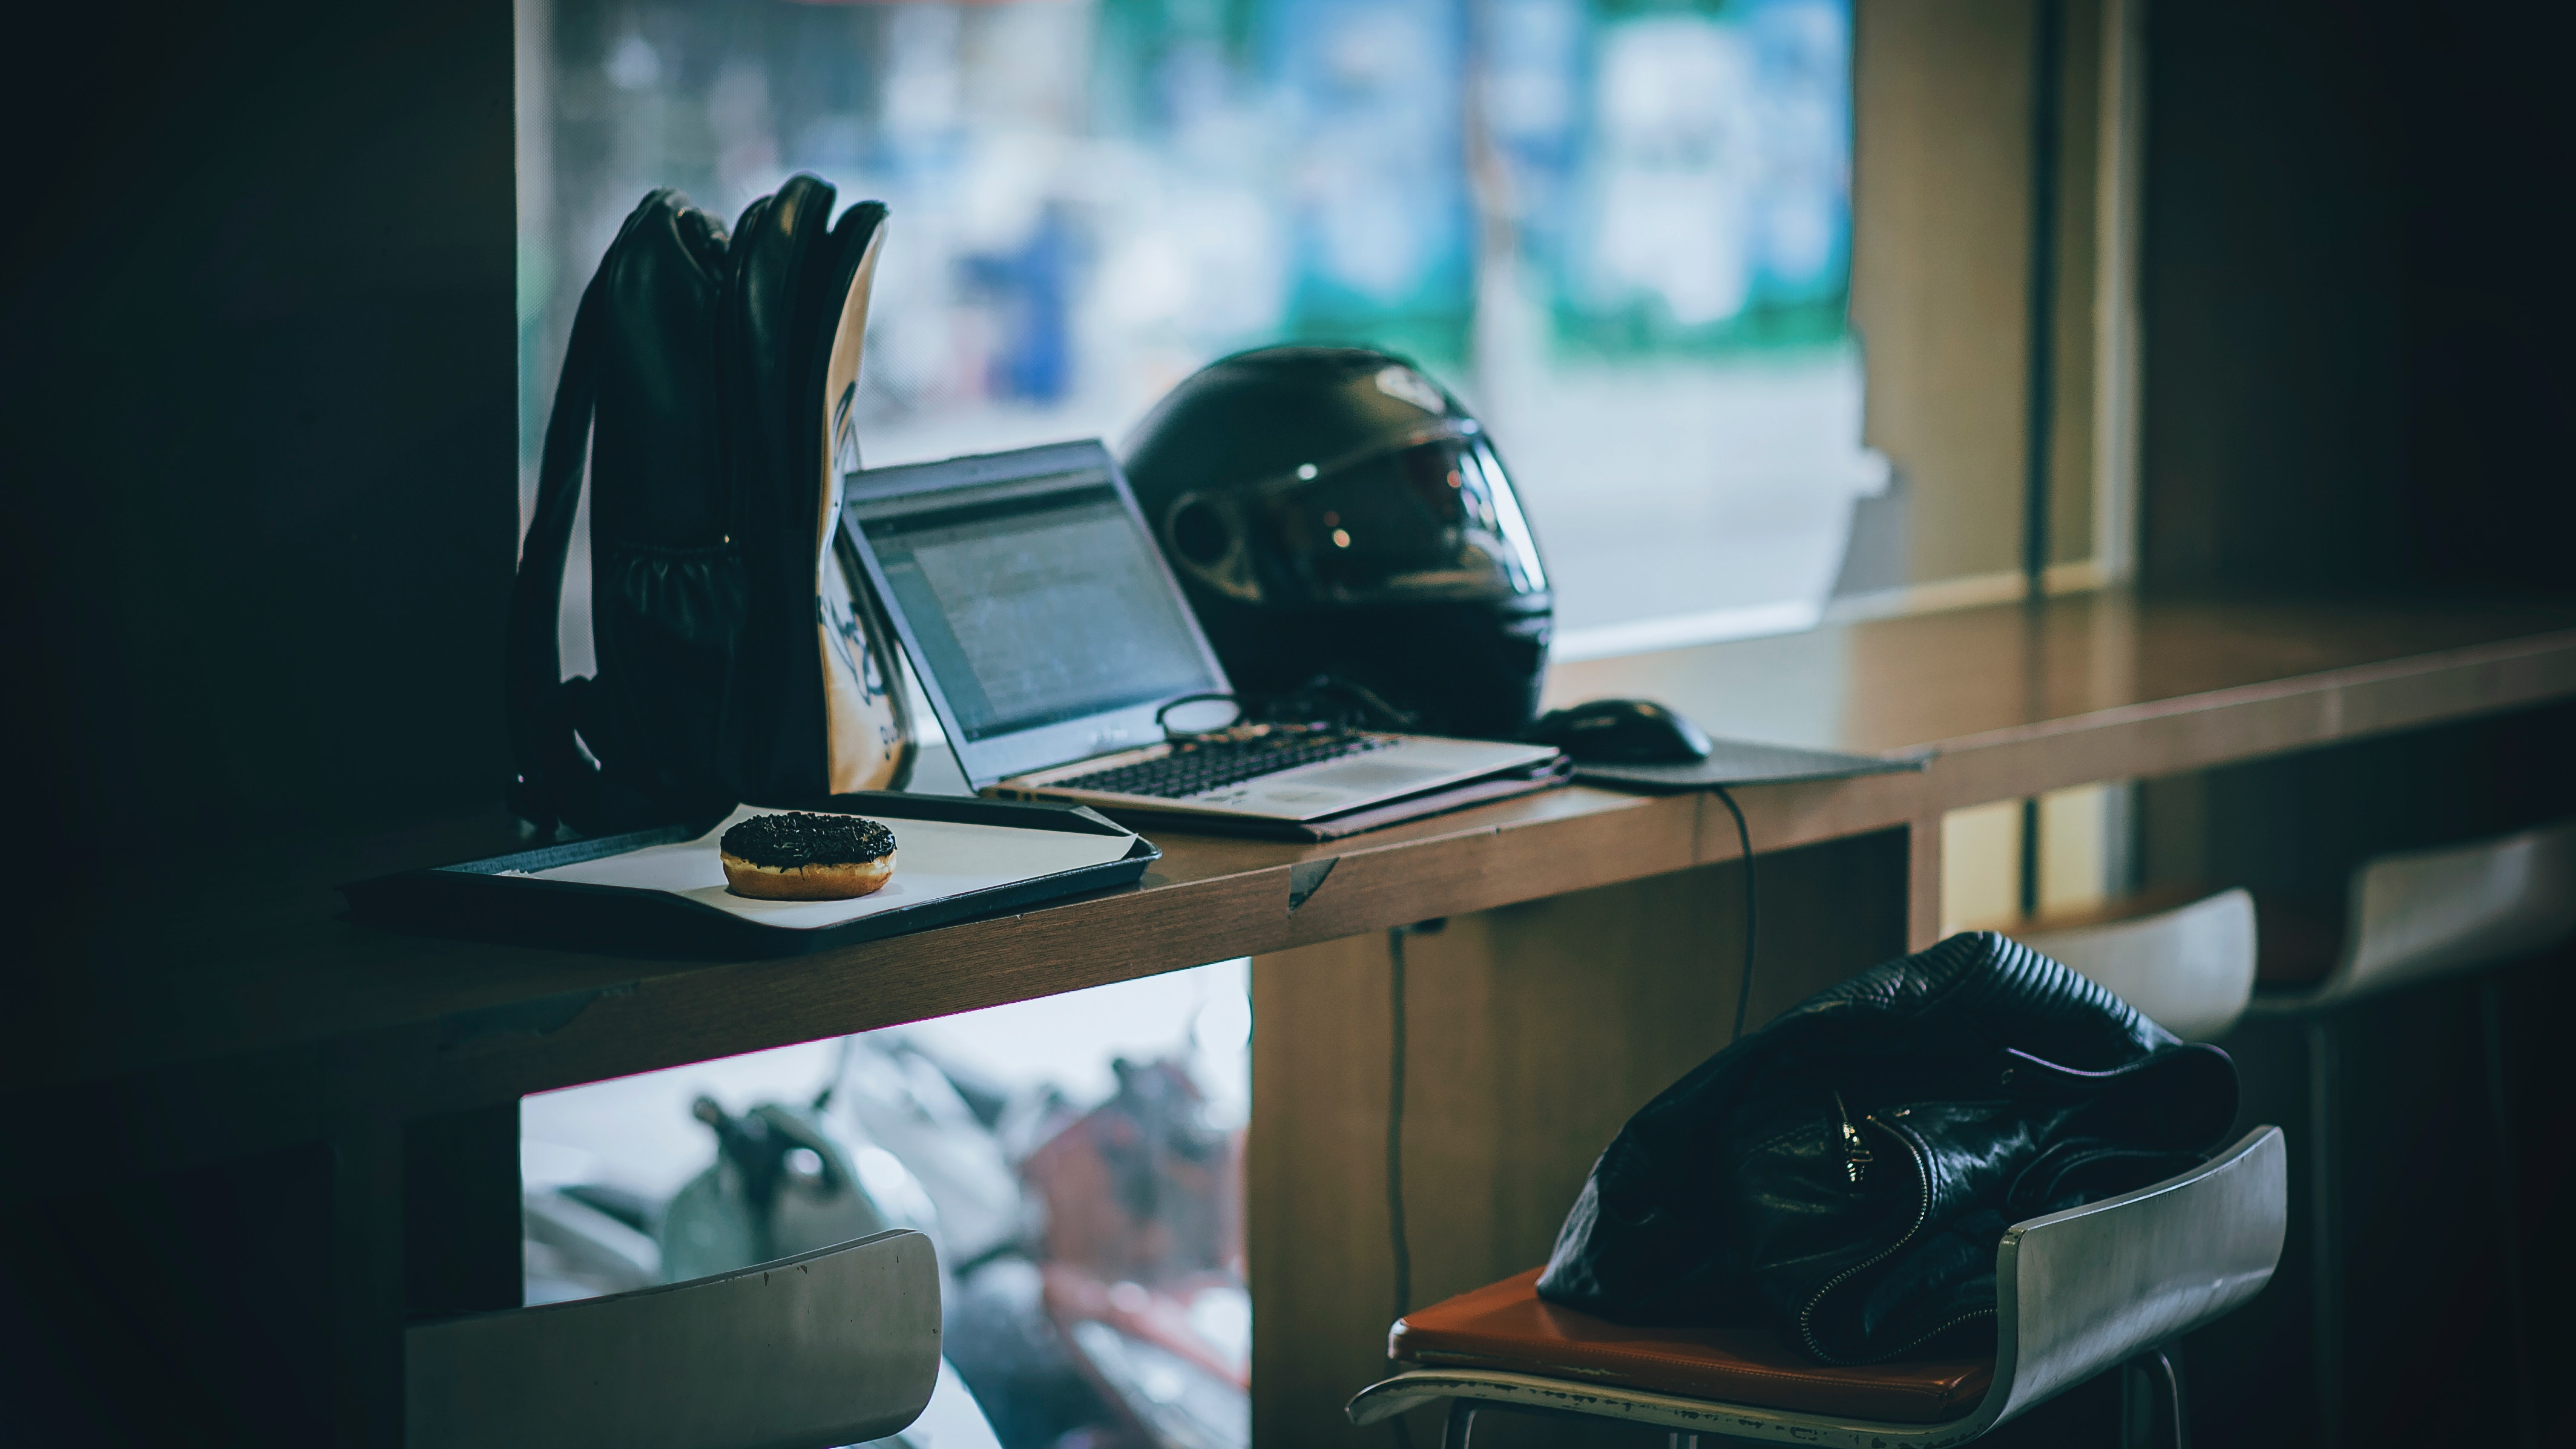 Gray laptop near black full-face helmet photo